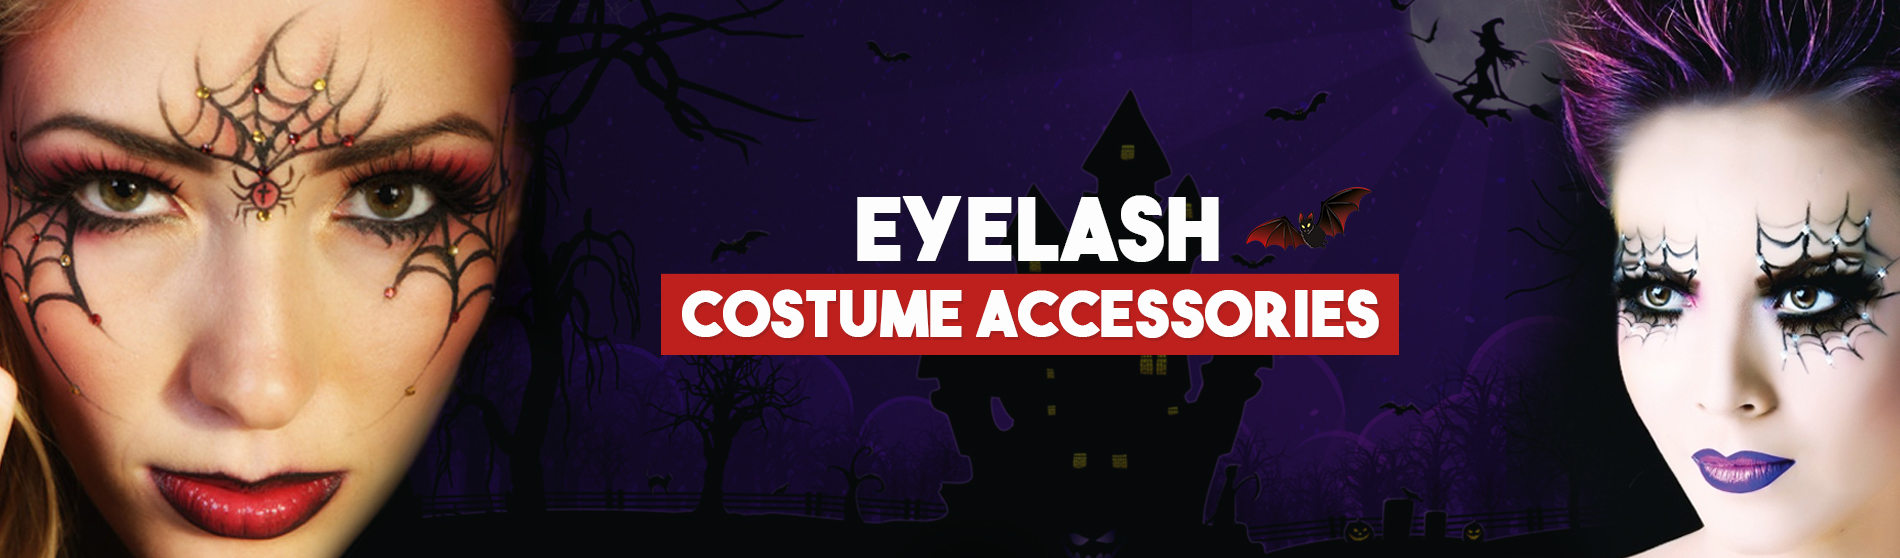 Eyelash-Costume-Accessories